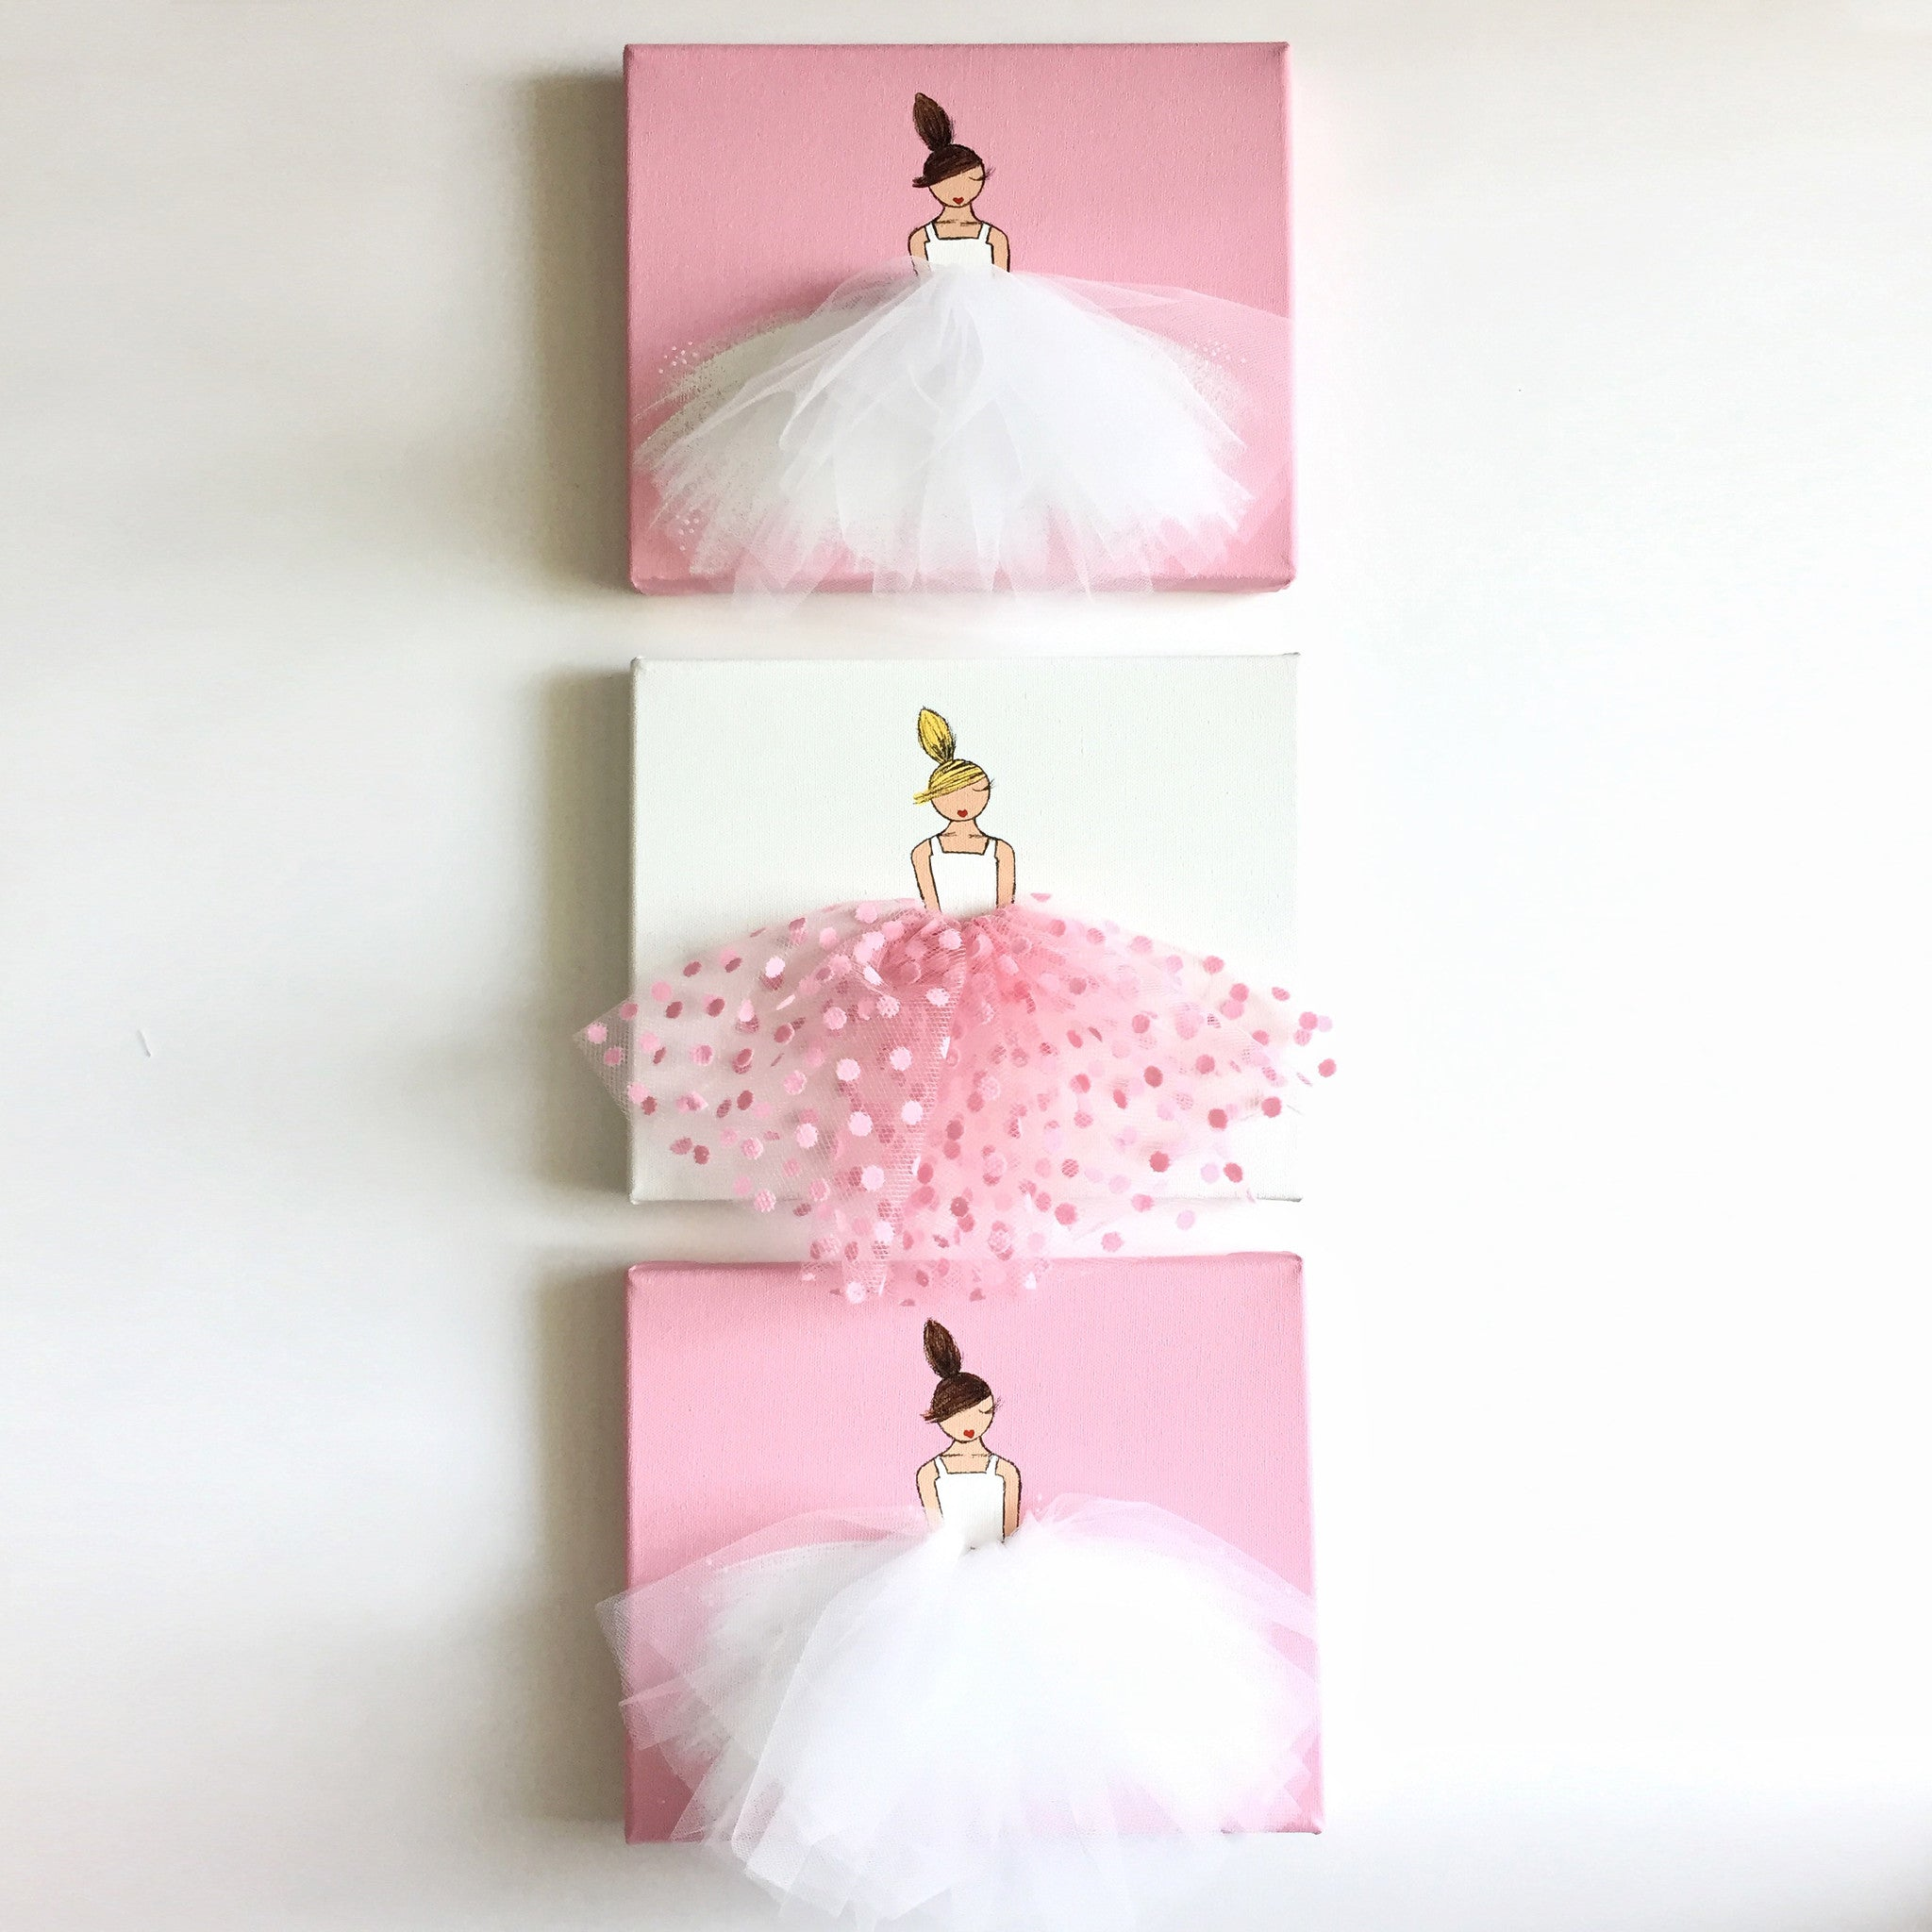 Girls nursery art ballerina decor set style a shenasi for Ballerina bilder kinderzimmer